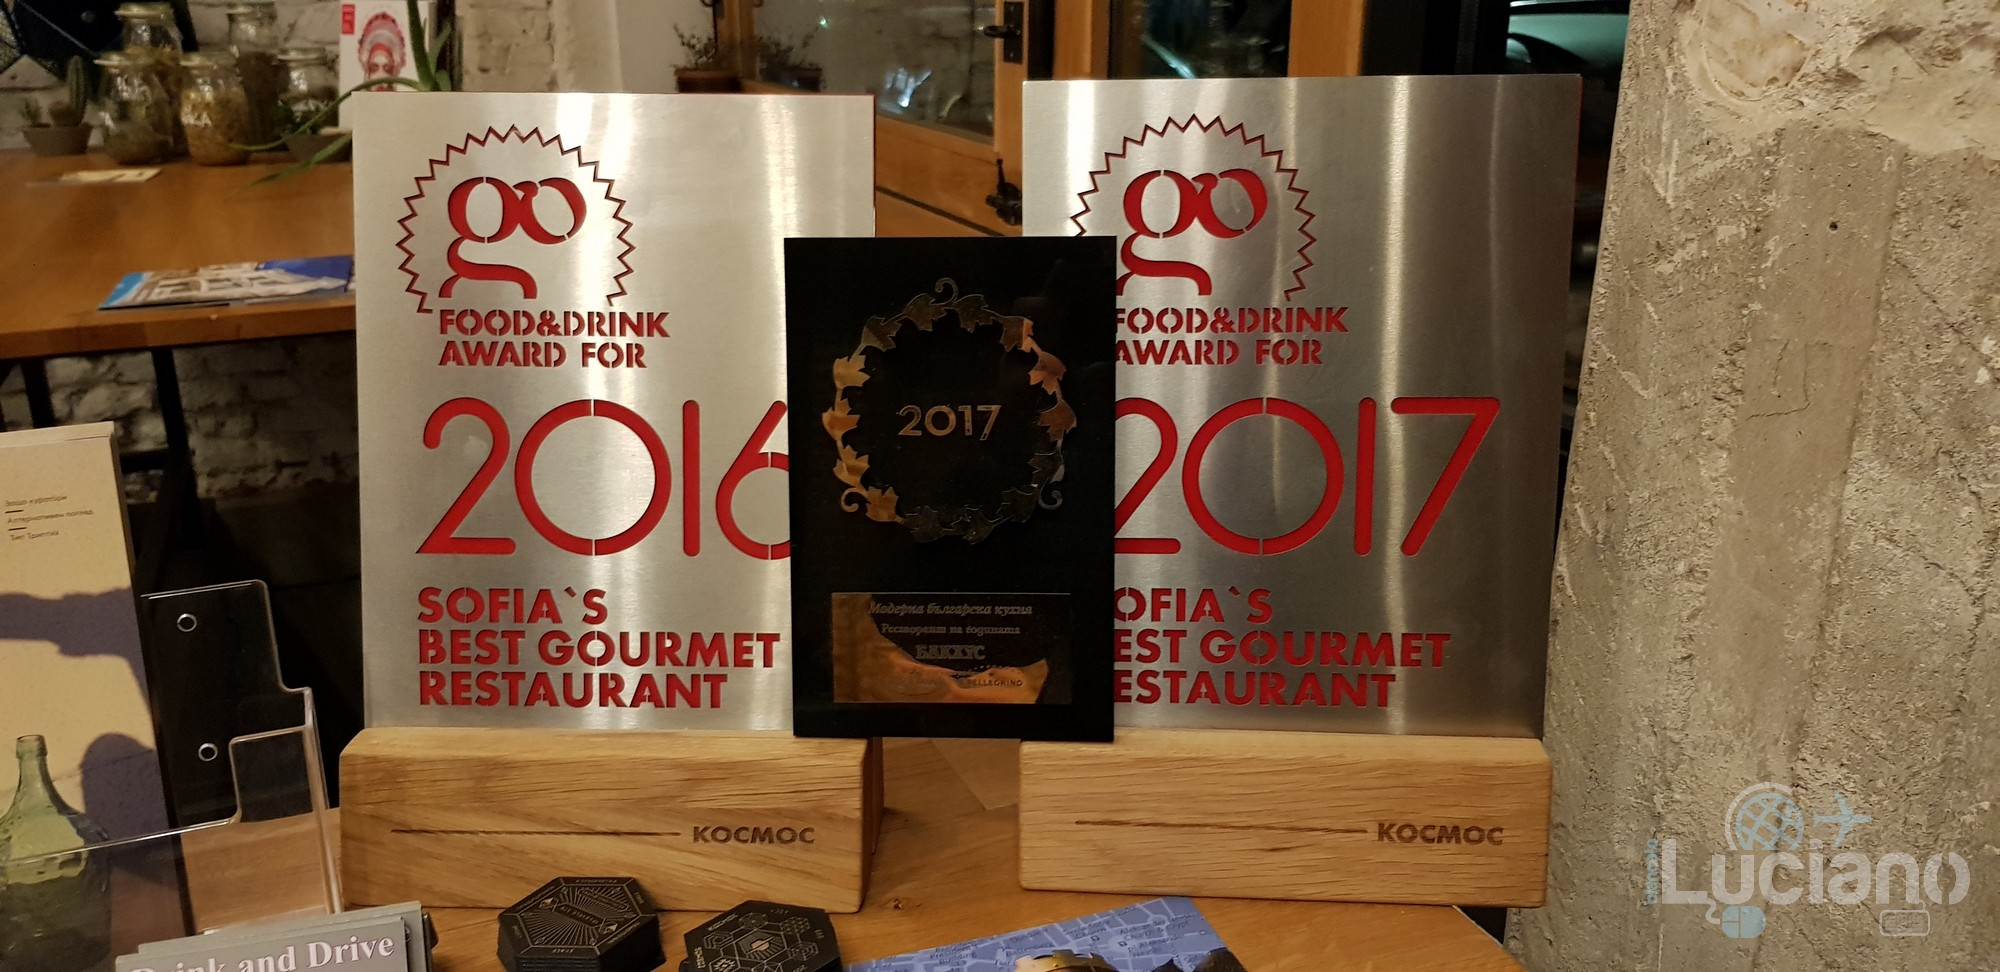 Food & Drink Award fo 2016 and 2017 - sofia best gourmet restaurant - Космос-Cosmos di Sofia - Bulgaria